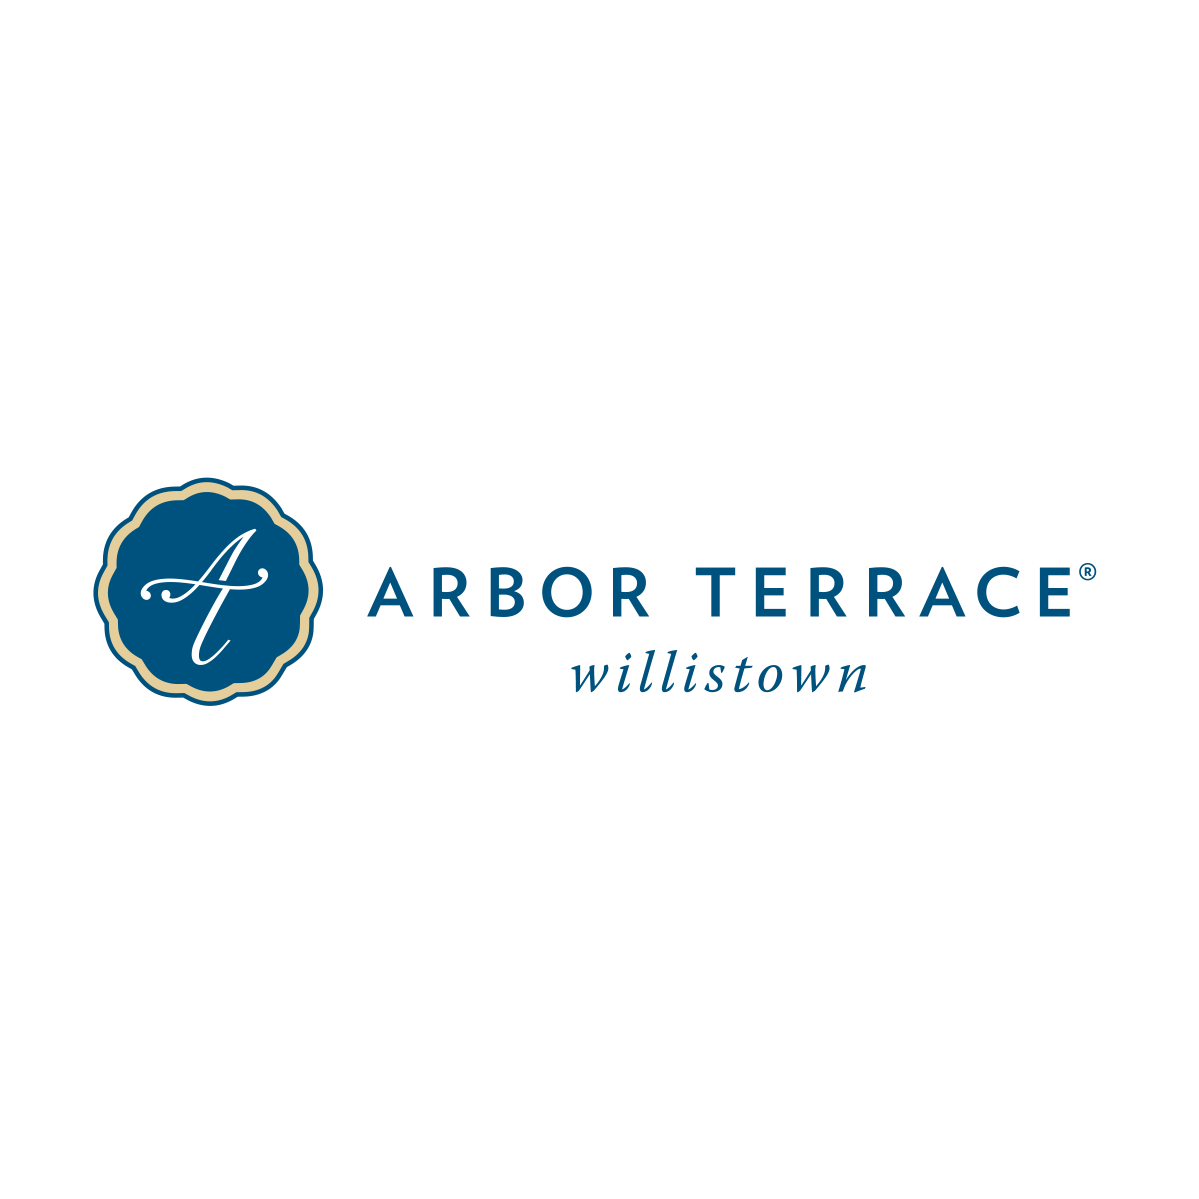 Arbor Terrace Willistown